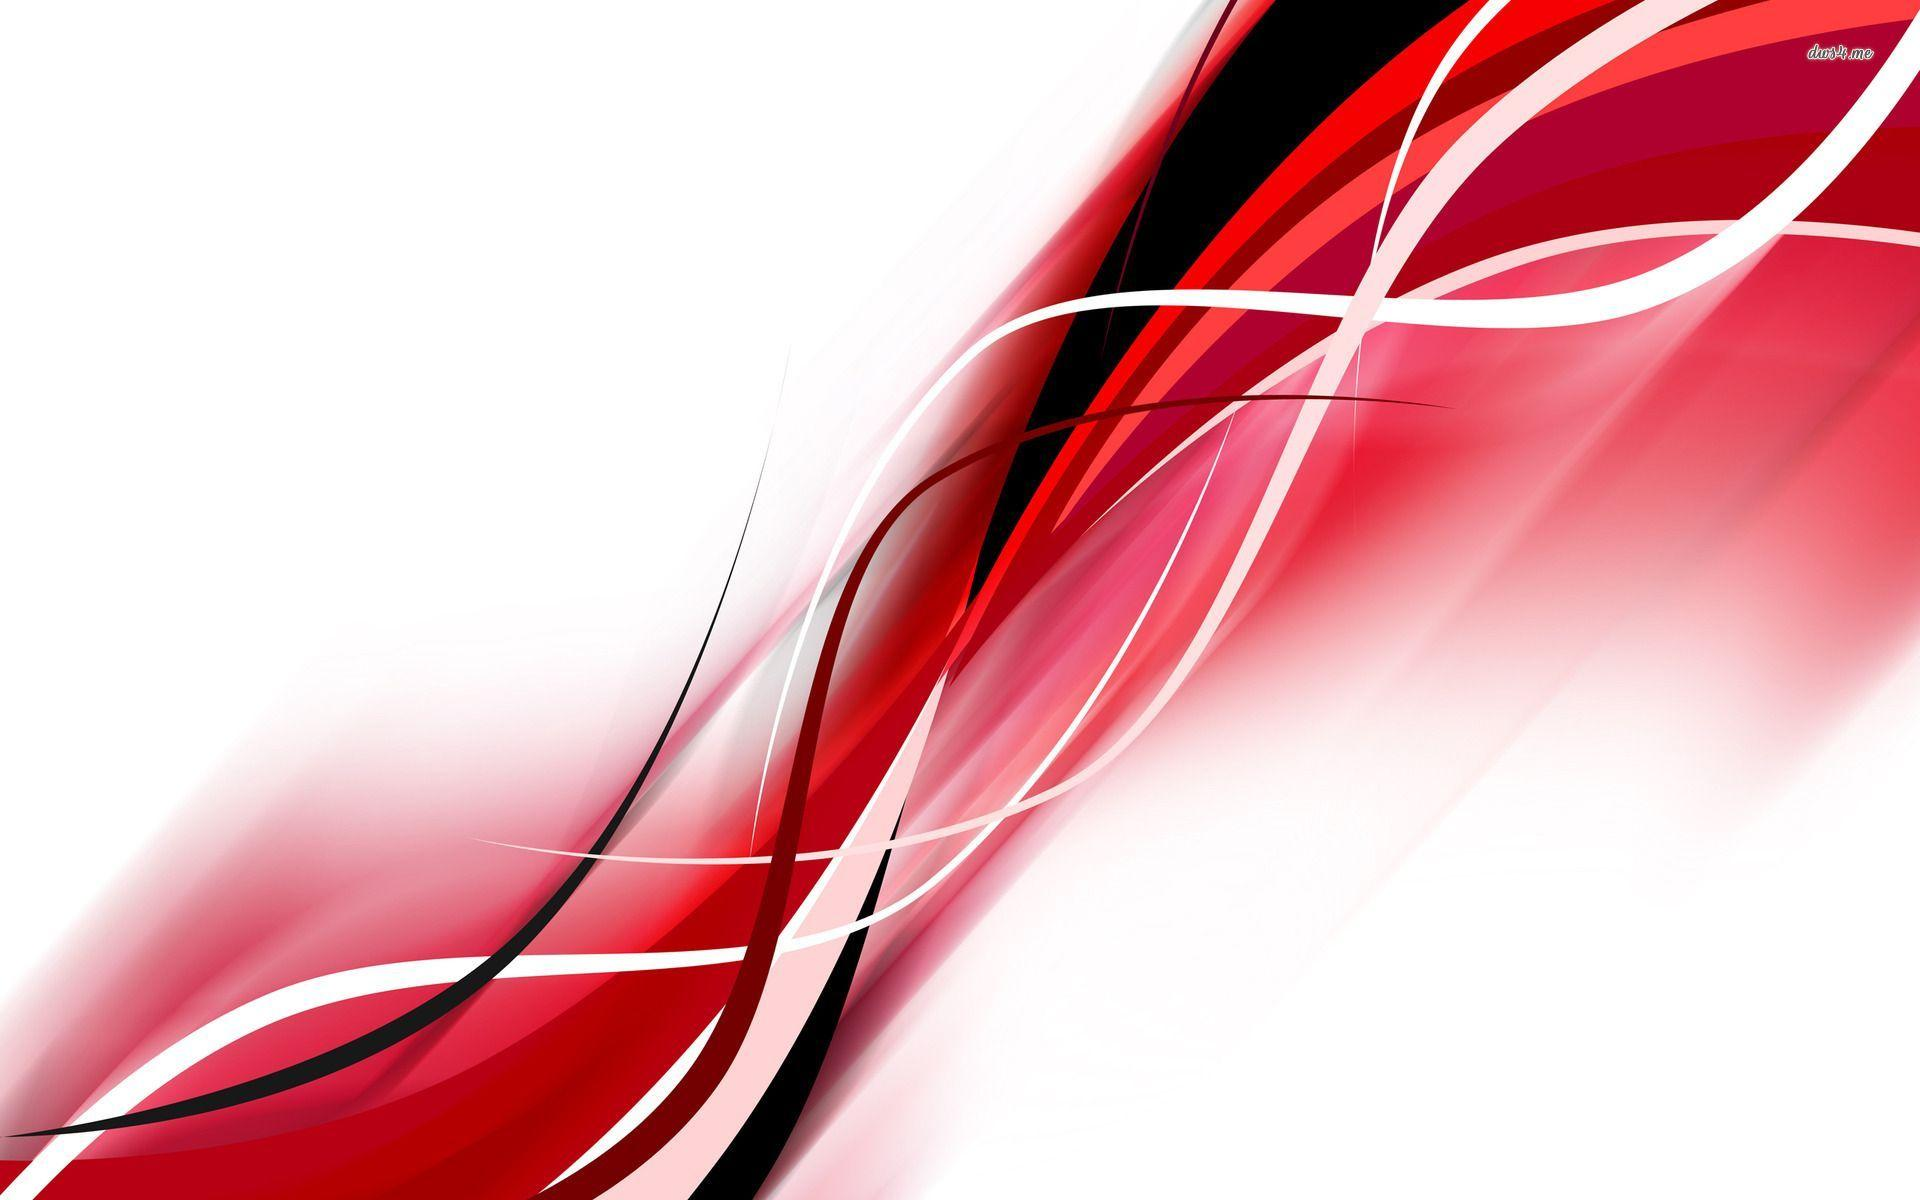 Red And White Background Powerpoint Backgrounds For Free Powerpoint Templates